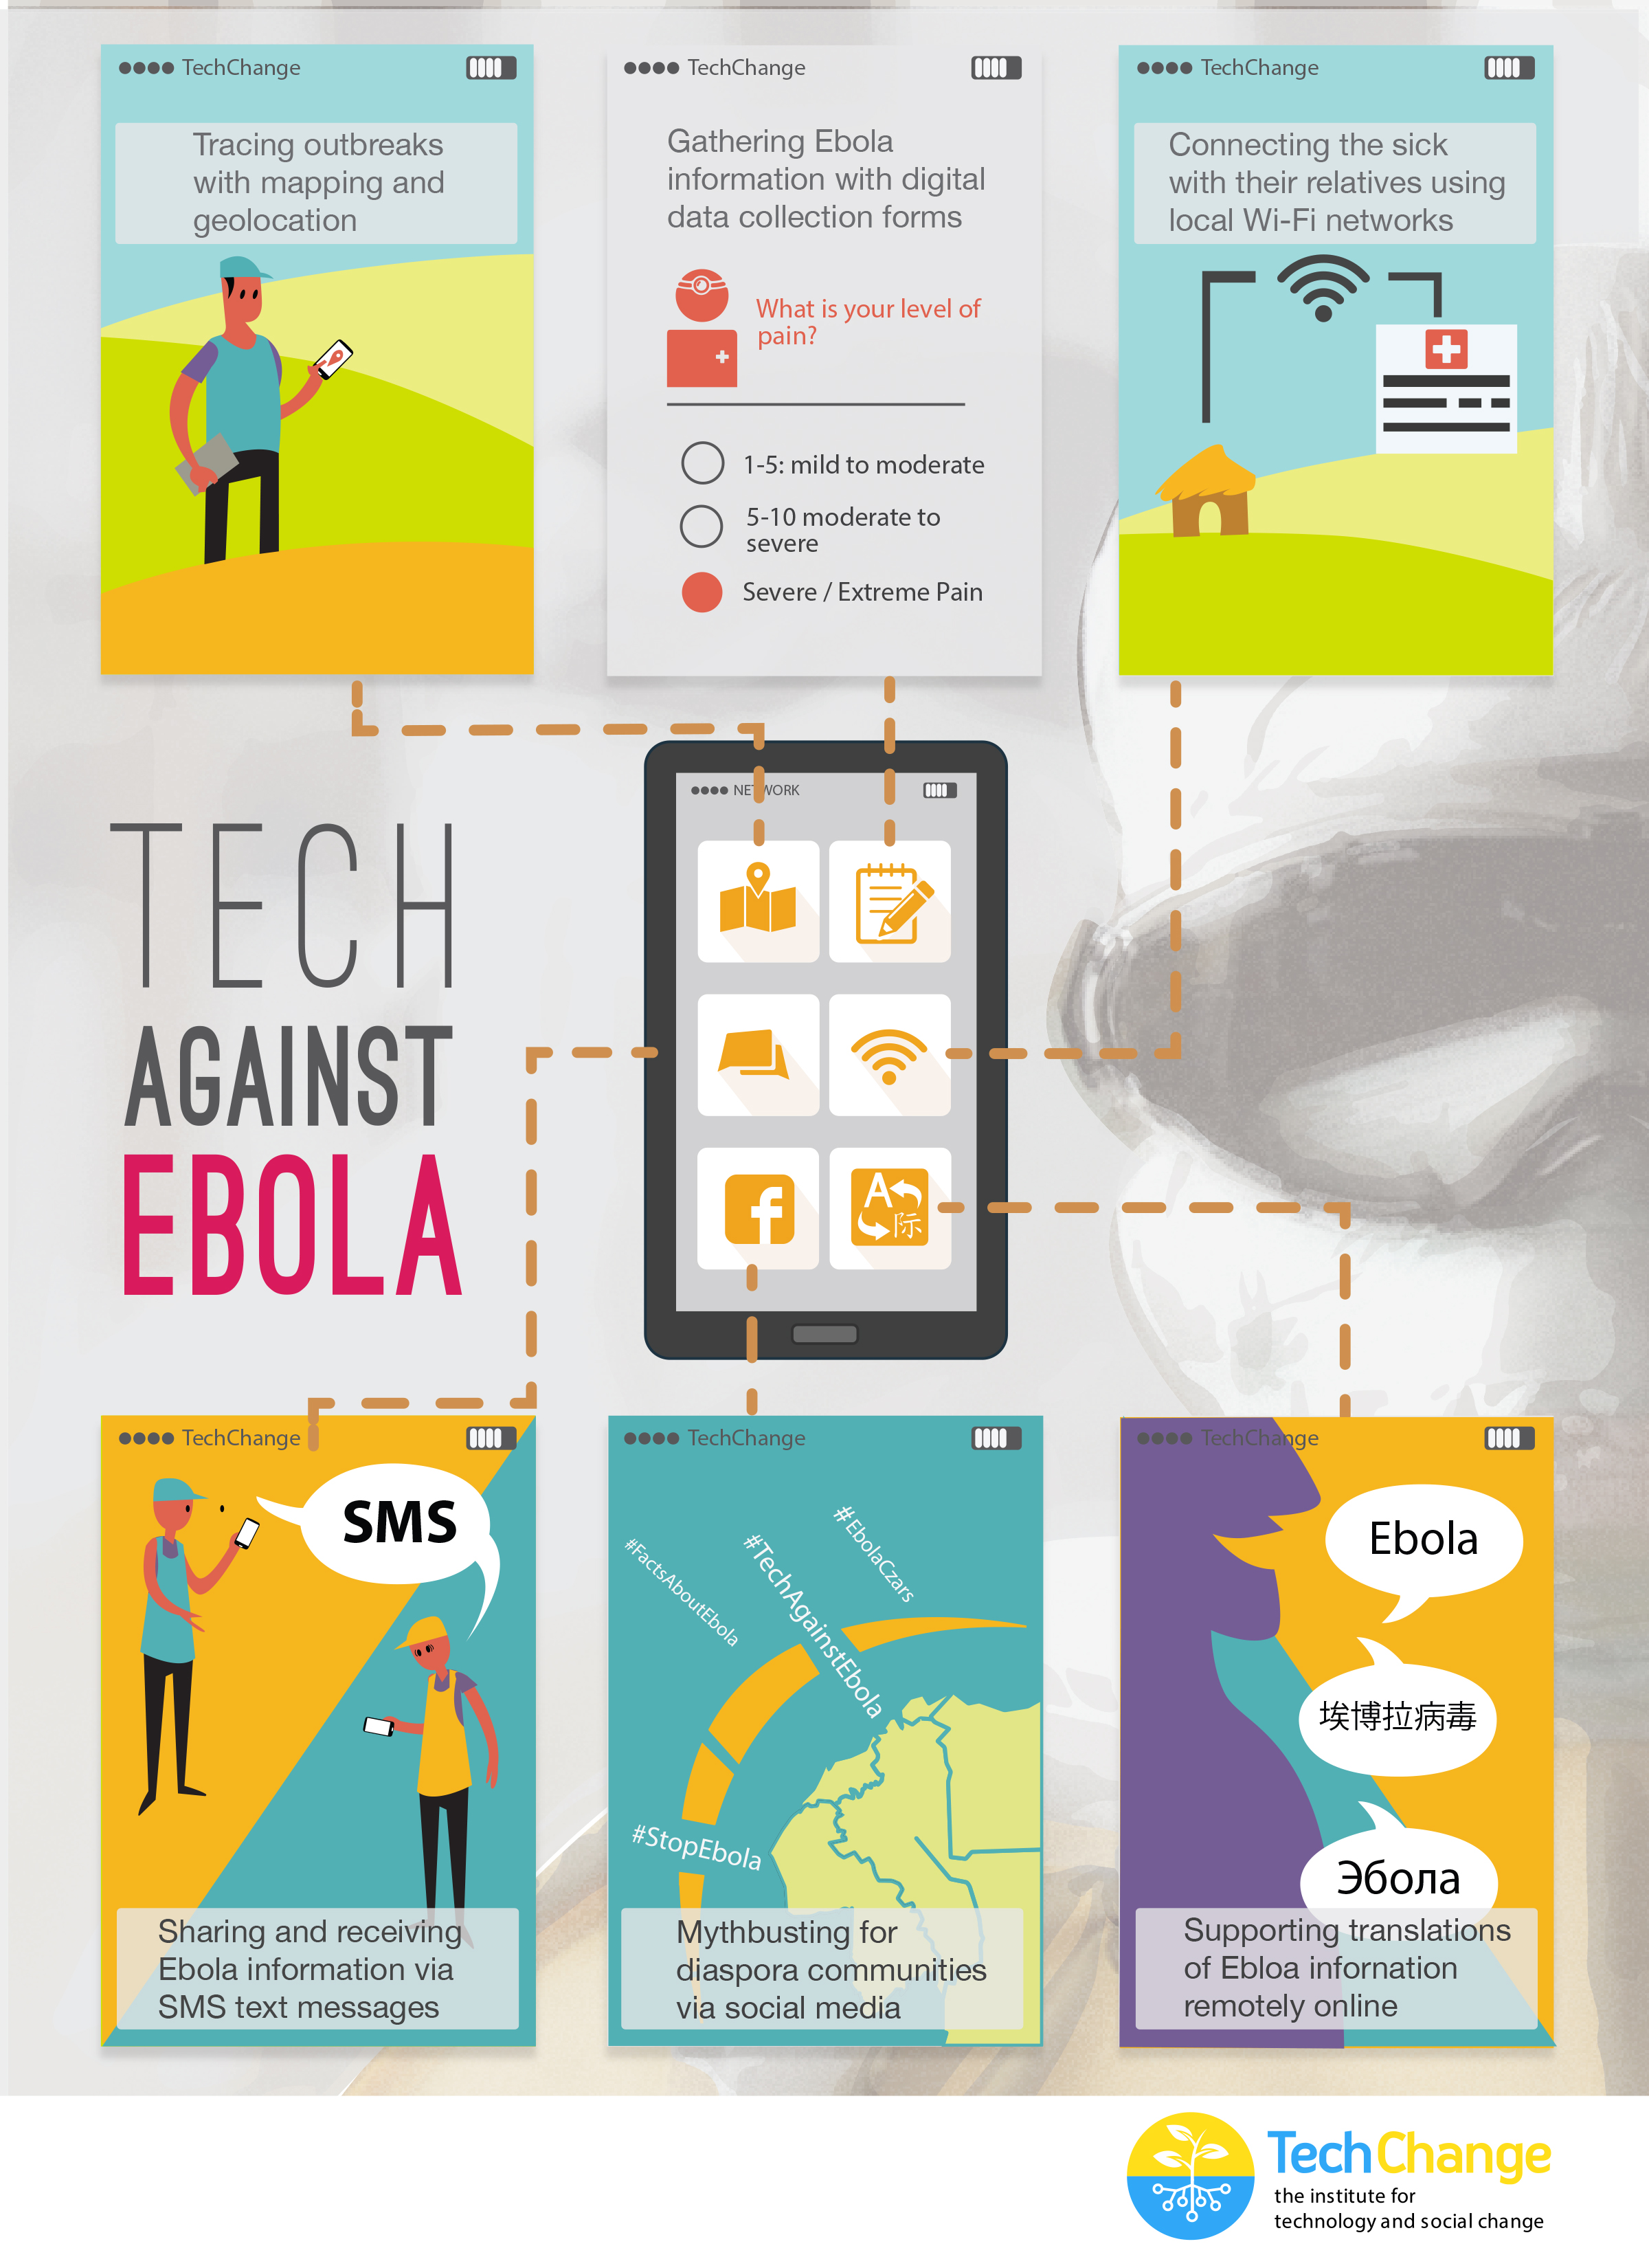 TechChange Ebola Infographic